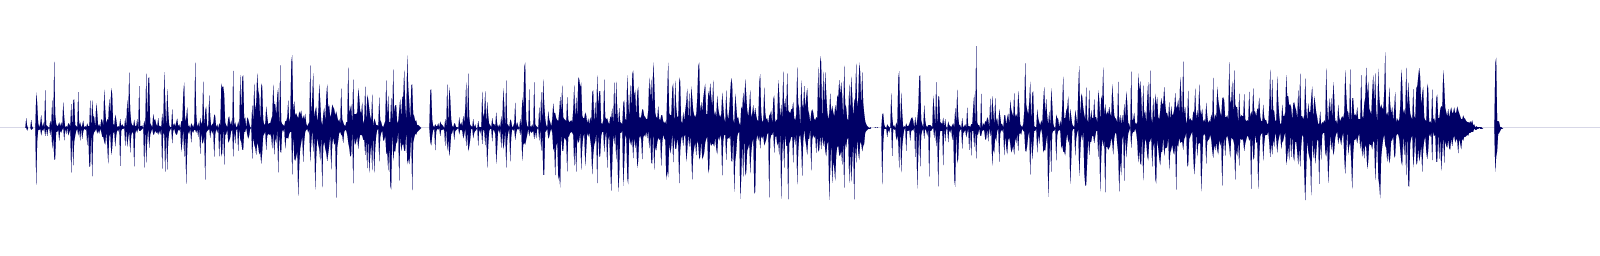 waveform of track #95265